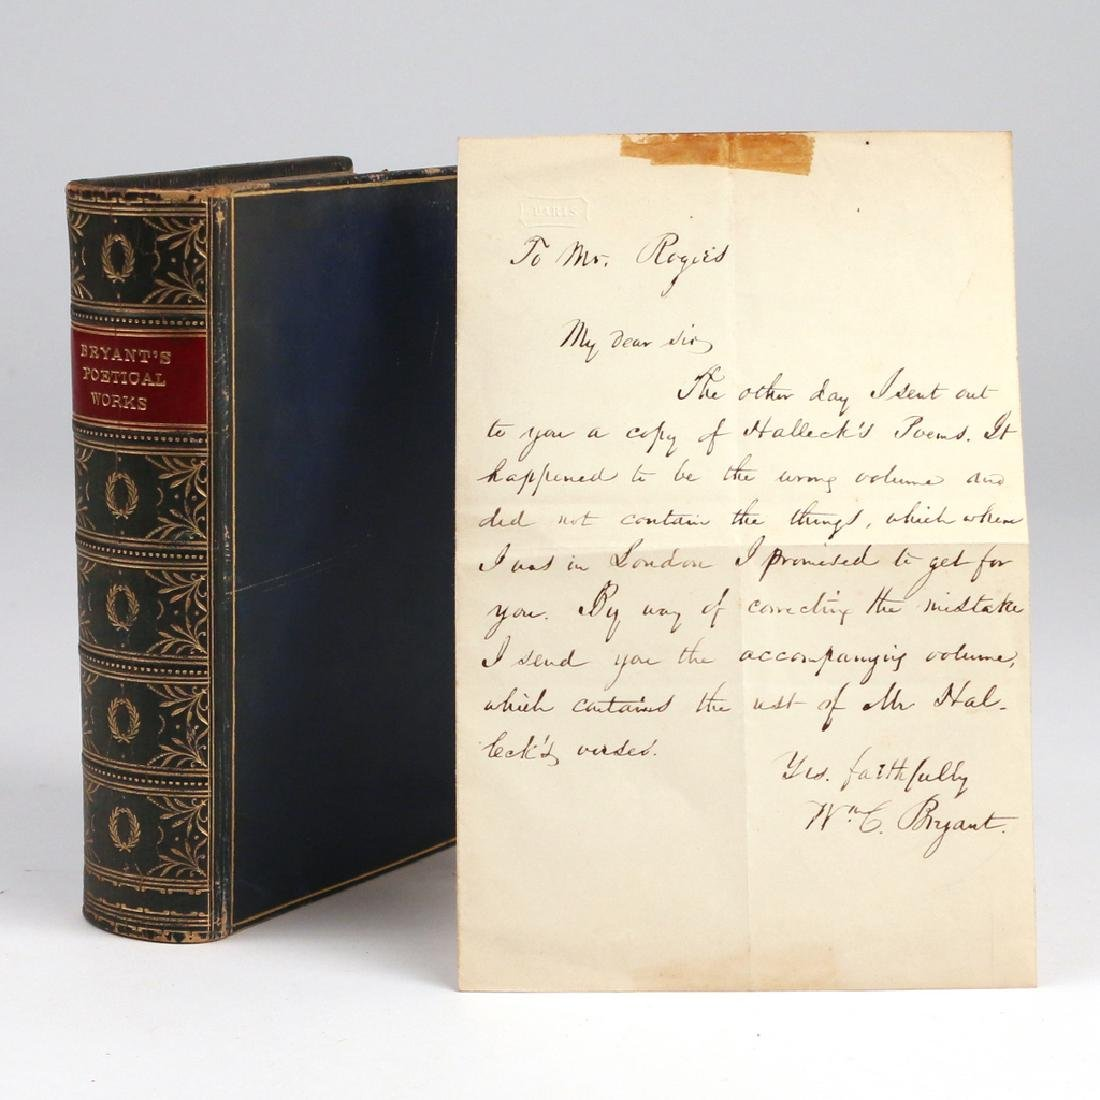 (2pc) WILLIAM CULLEN BRYANT LETTER AND BOOK